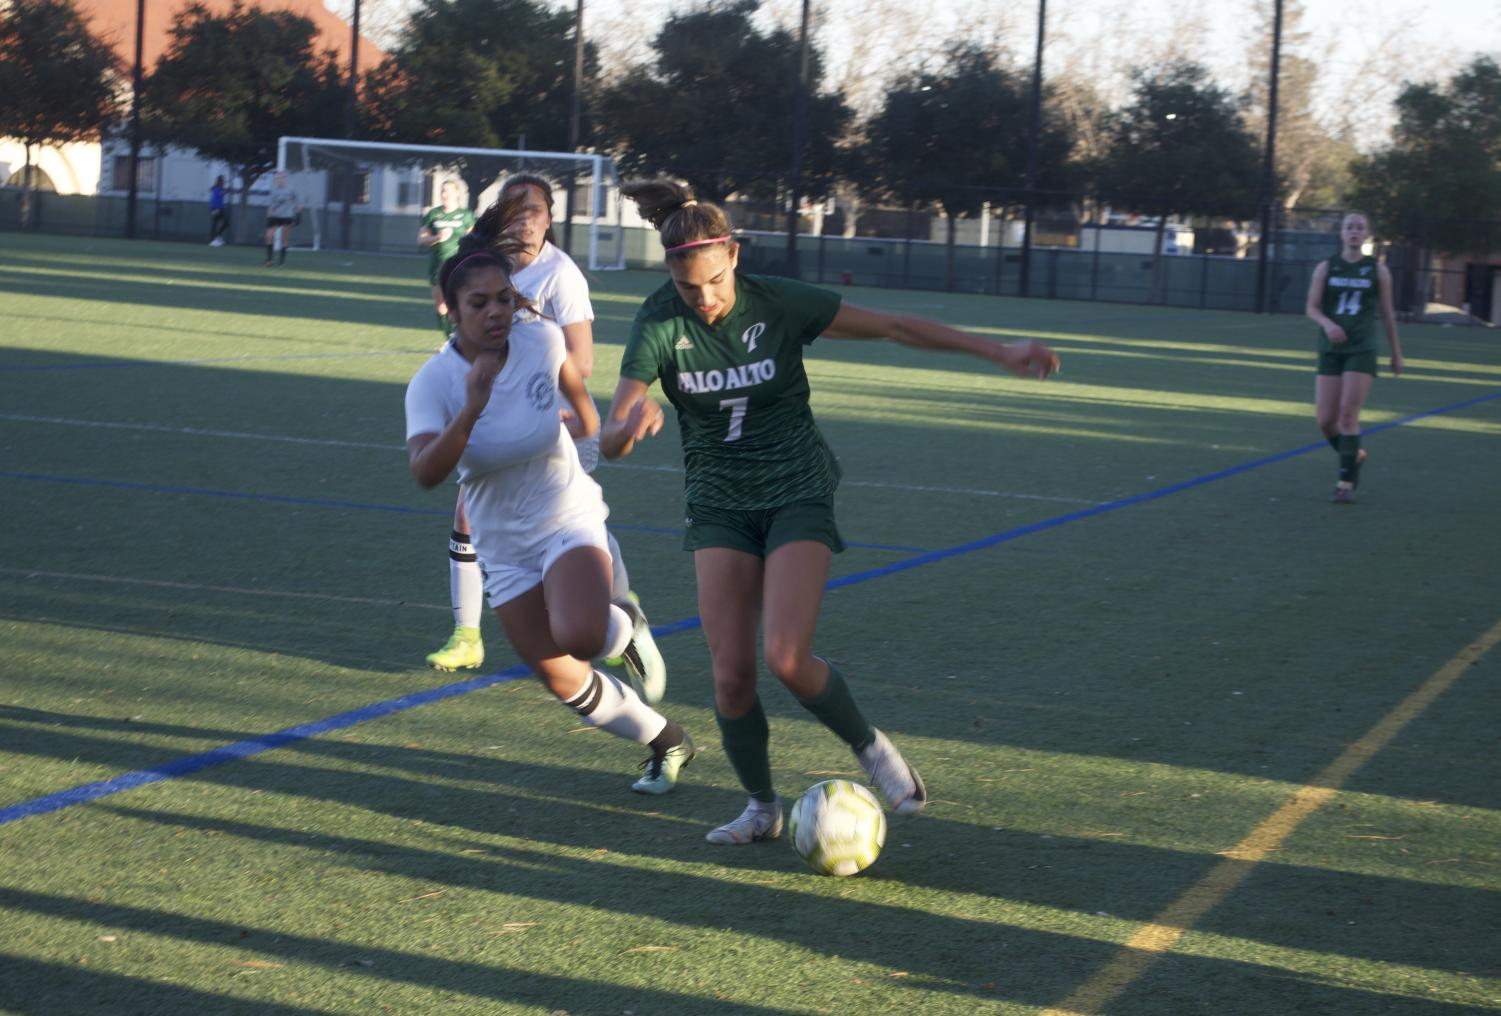 Senior Leila Khan fights to keep the ball moving forward as she pushes her way past a Homestead defender. Photo: Tara Kapoor